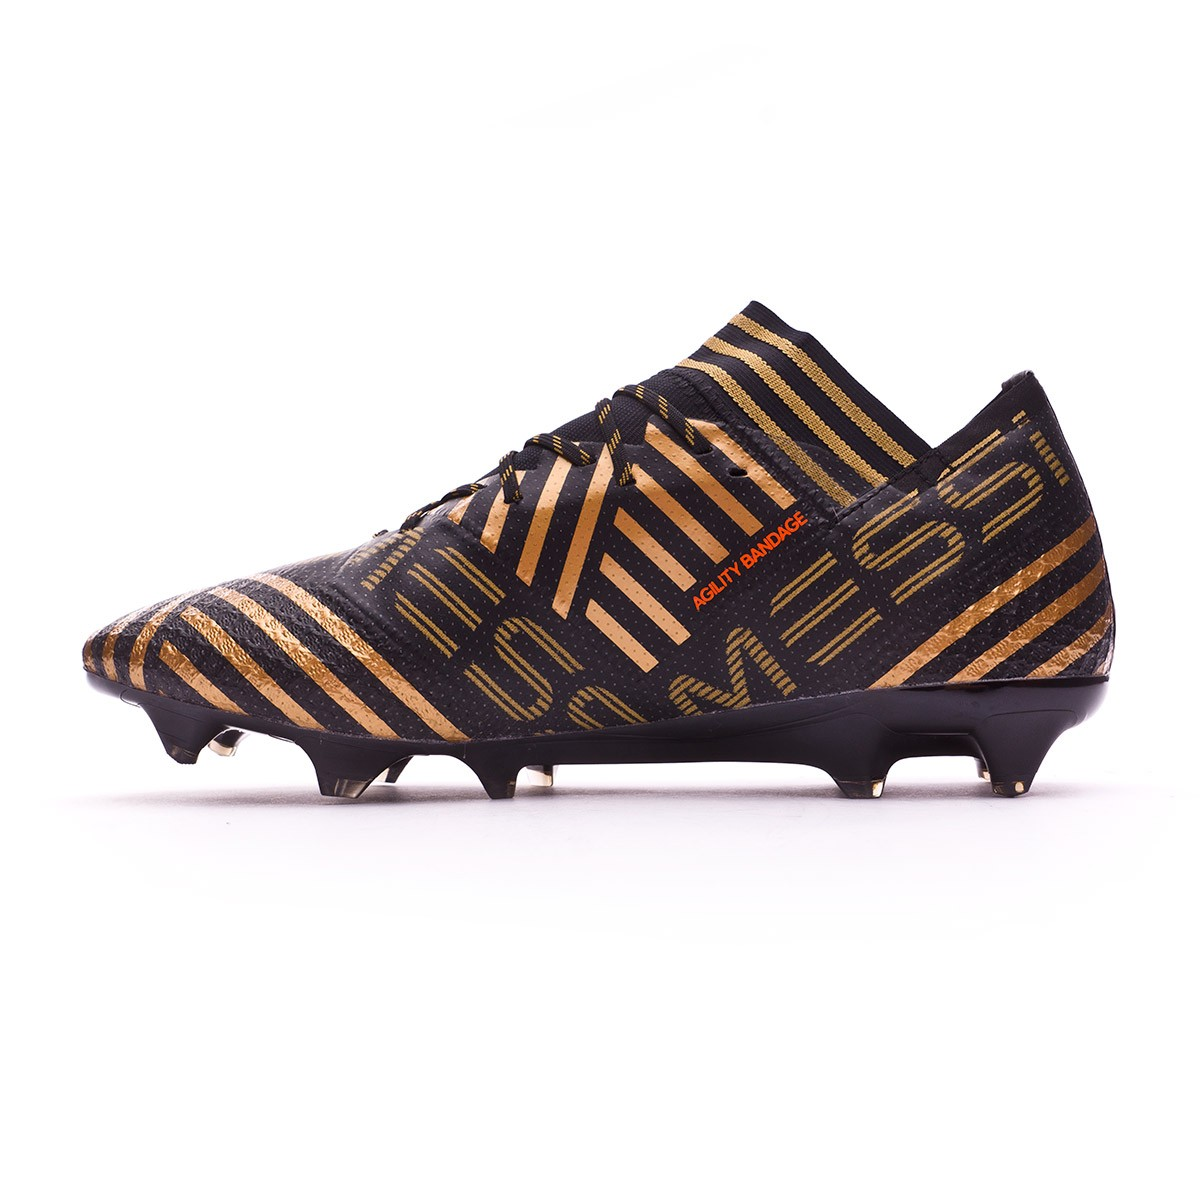 39c5efd702e Football Boots adidas Nemeziz Messi 17.1 FG Core black-Solar red-Tactile  gold metallic - Football store Fútbol Emotion